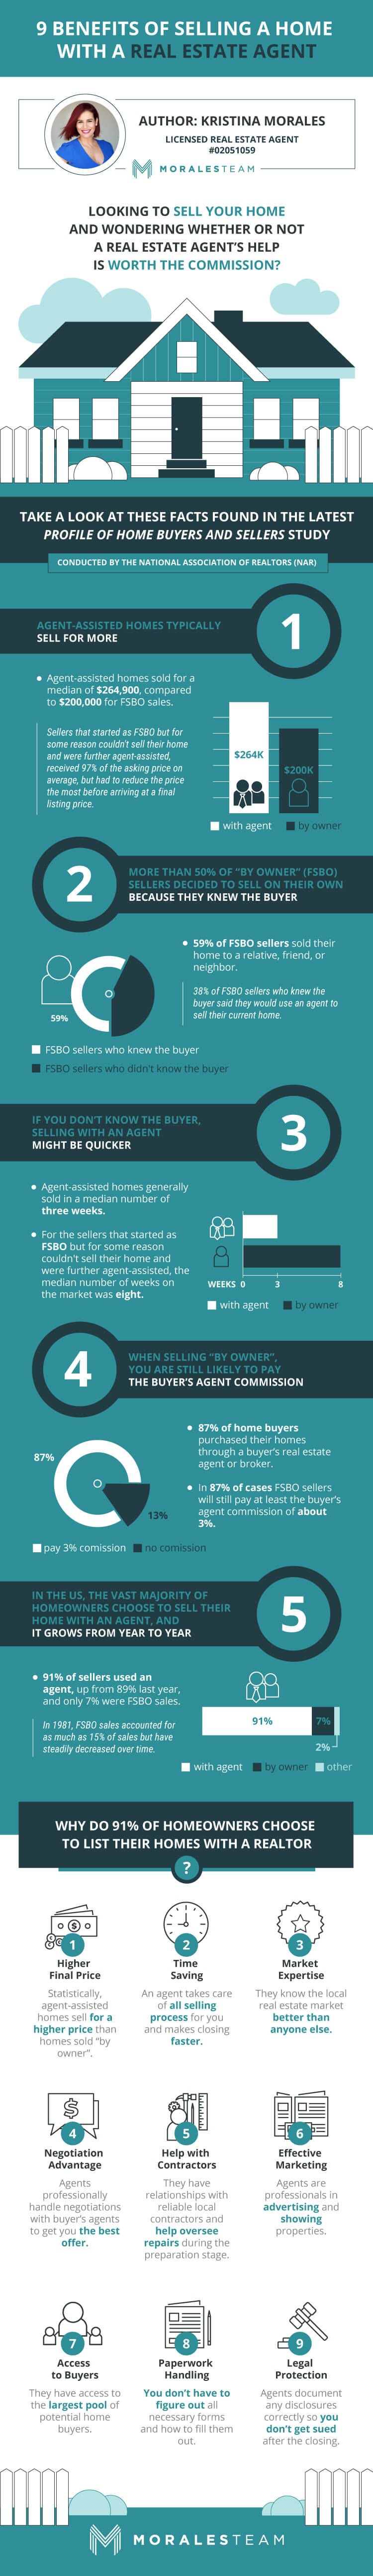 Infographic: Benefits of Hiring a Realtor to Sell a House in Houston TX